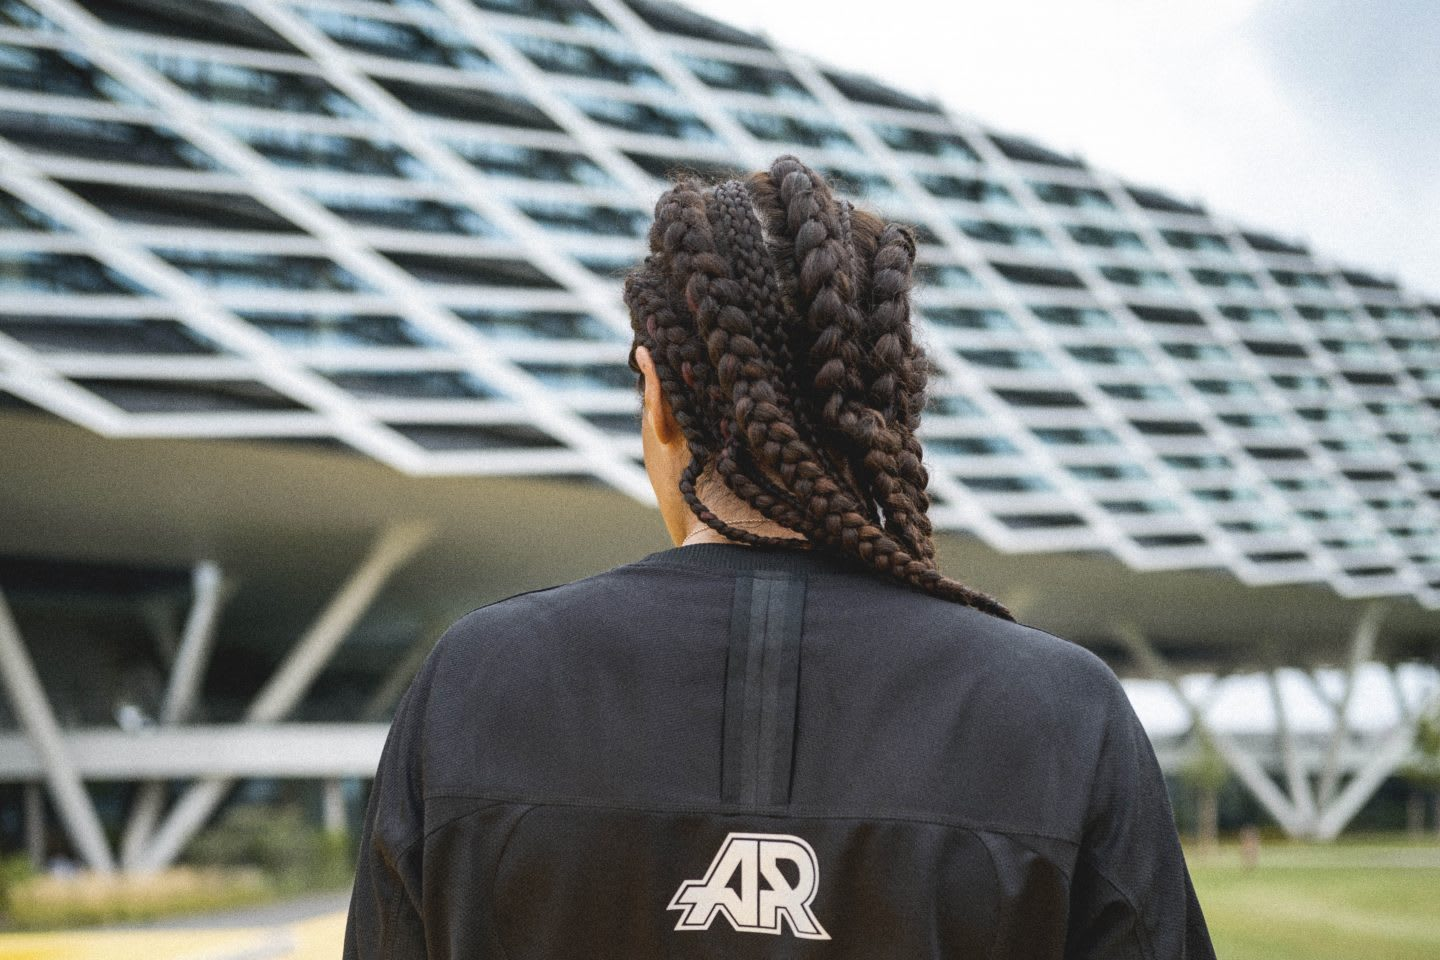 Girl wearing adidas Runners t-shirt staring at the adidas Arena building at the adidas HQ in Herzogenaurach, Germany, culture and workplace, office, campus